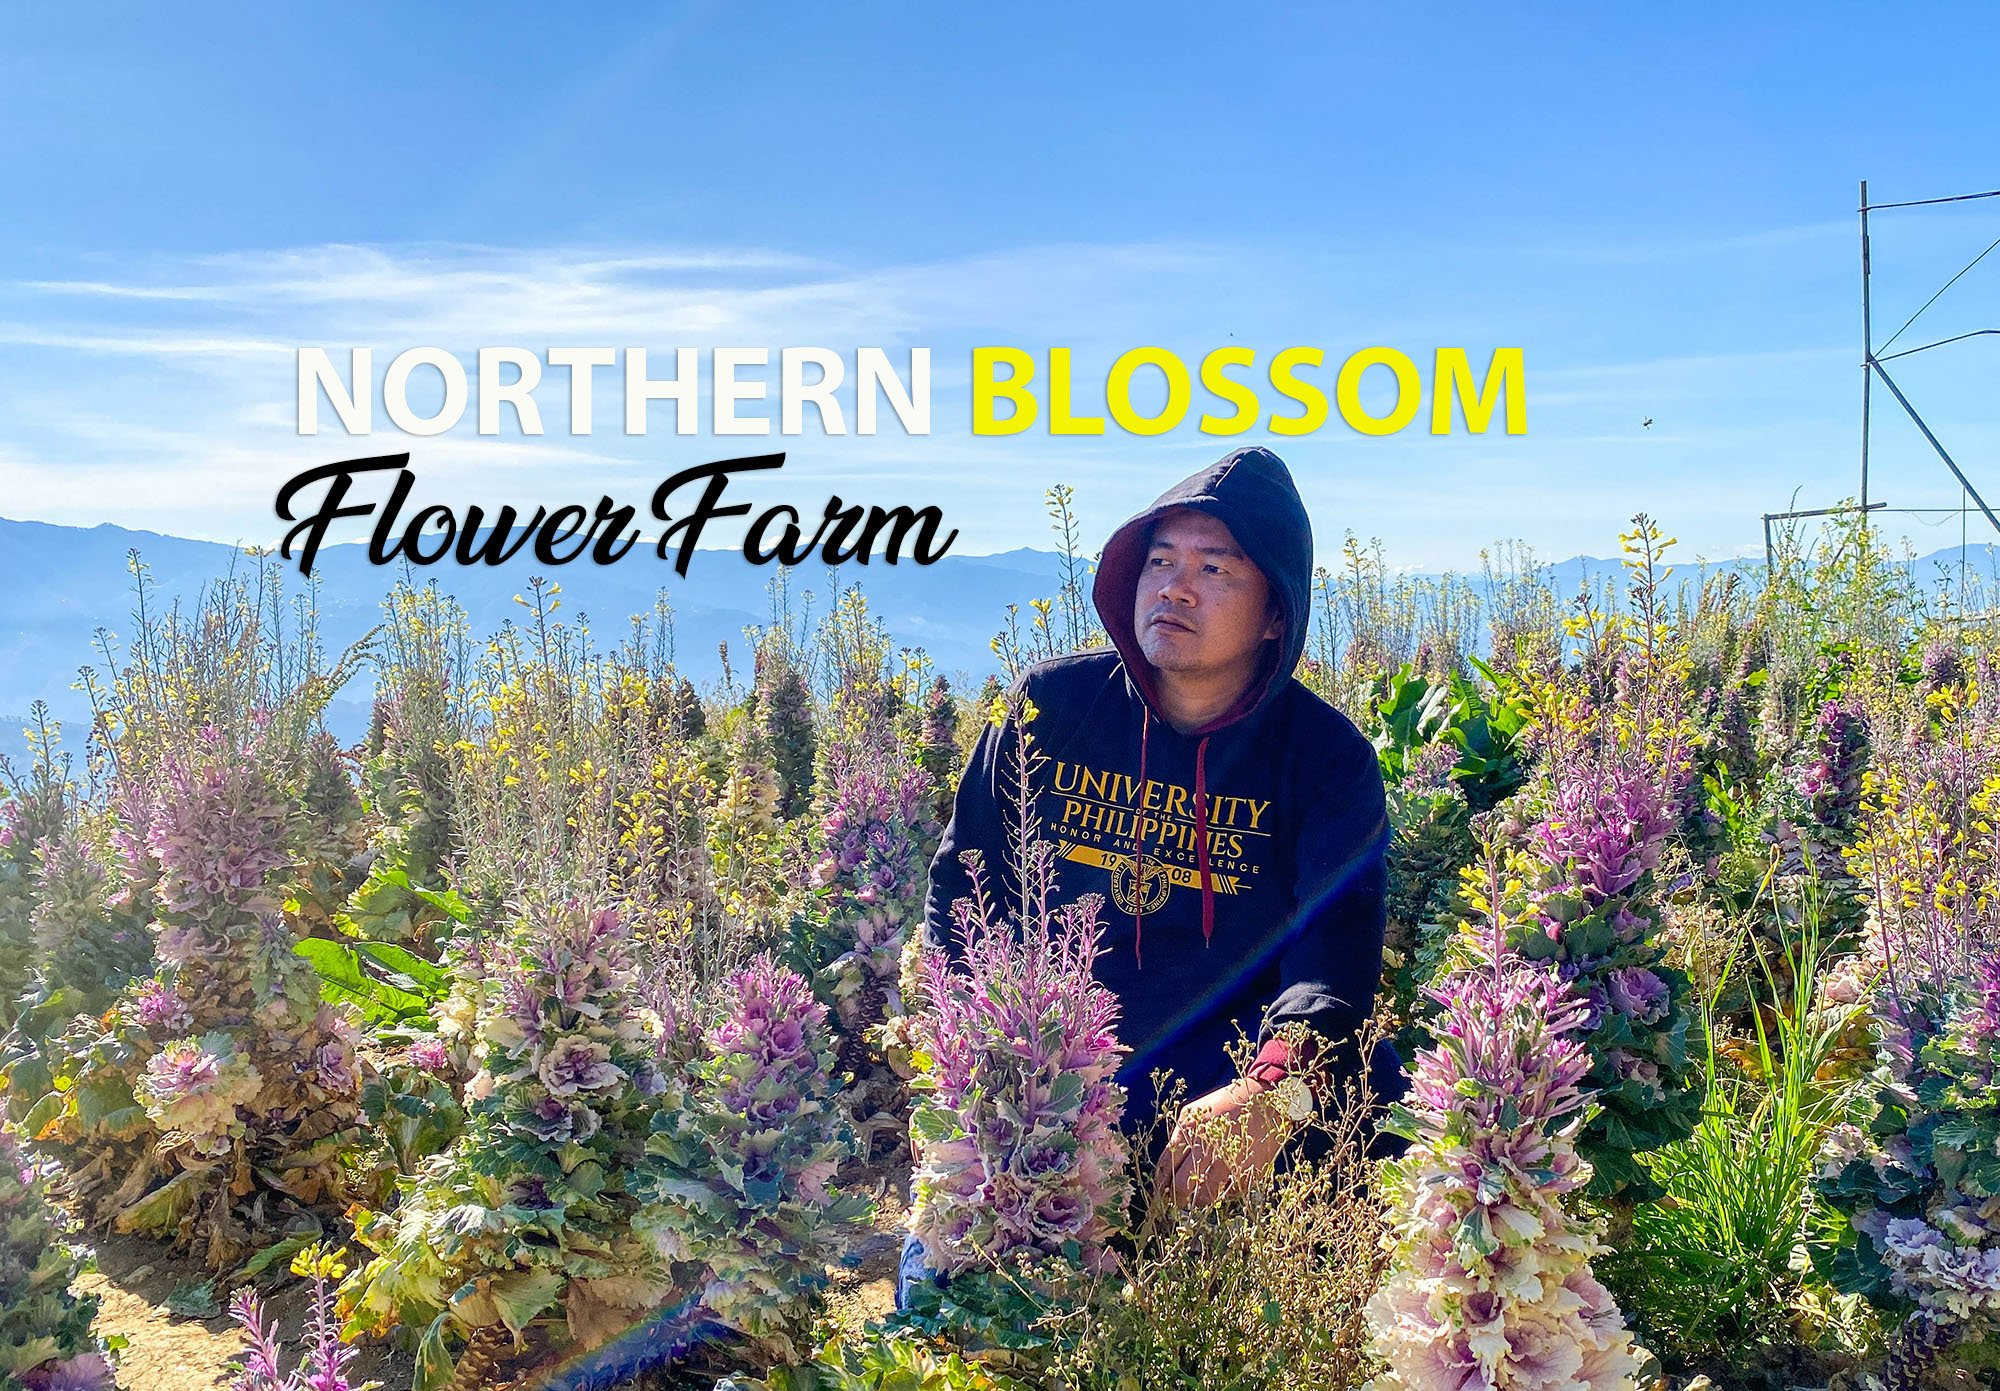 2020 Northern Blossom Flower Farm Travel Guide Blog